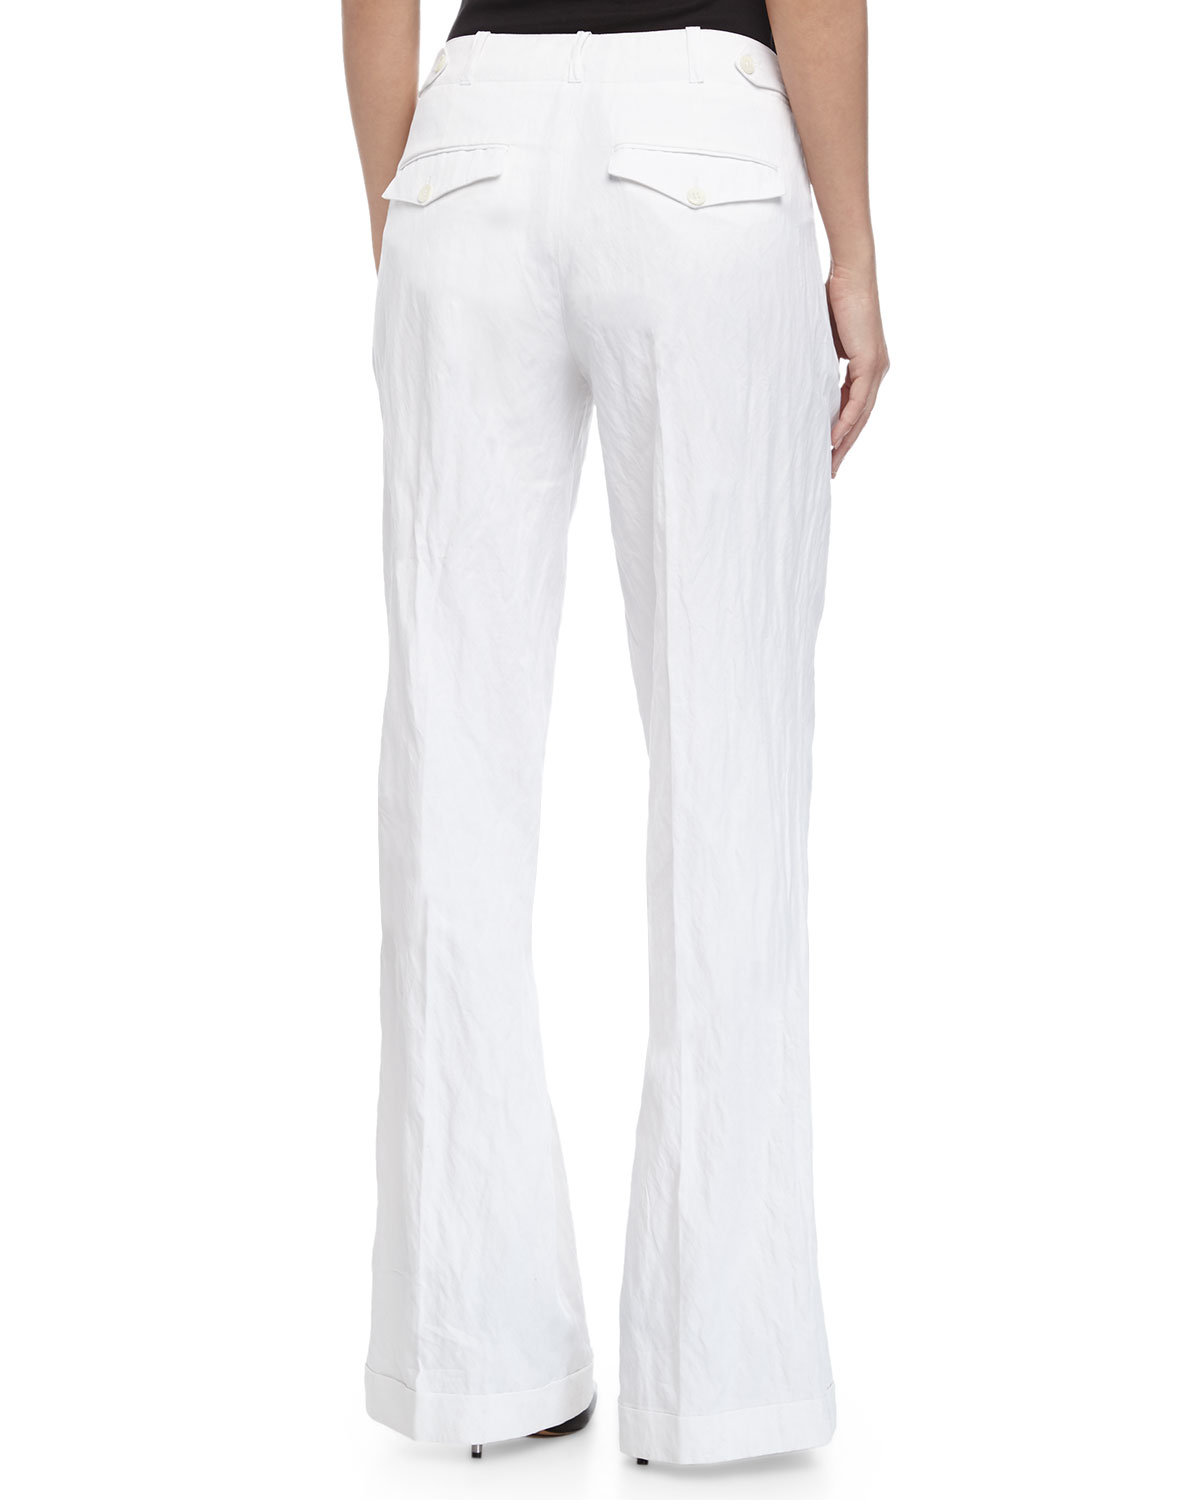 Michael kors Cuffed Wide-leg Pants in White | Lyst